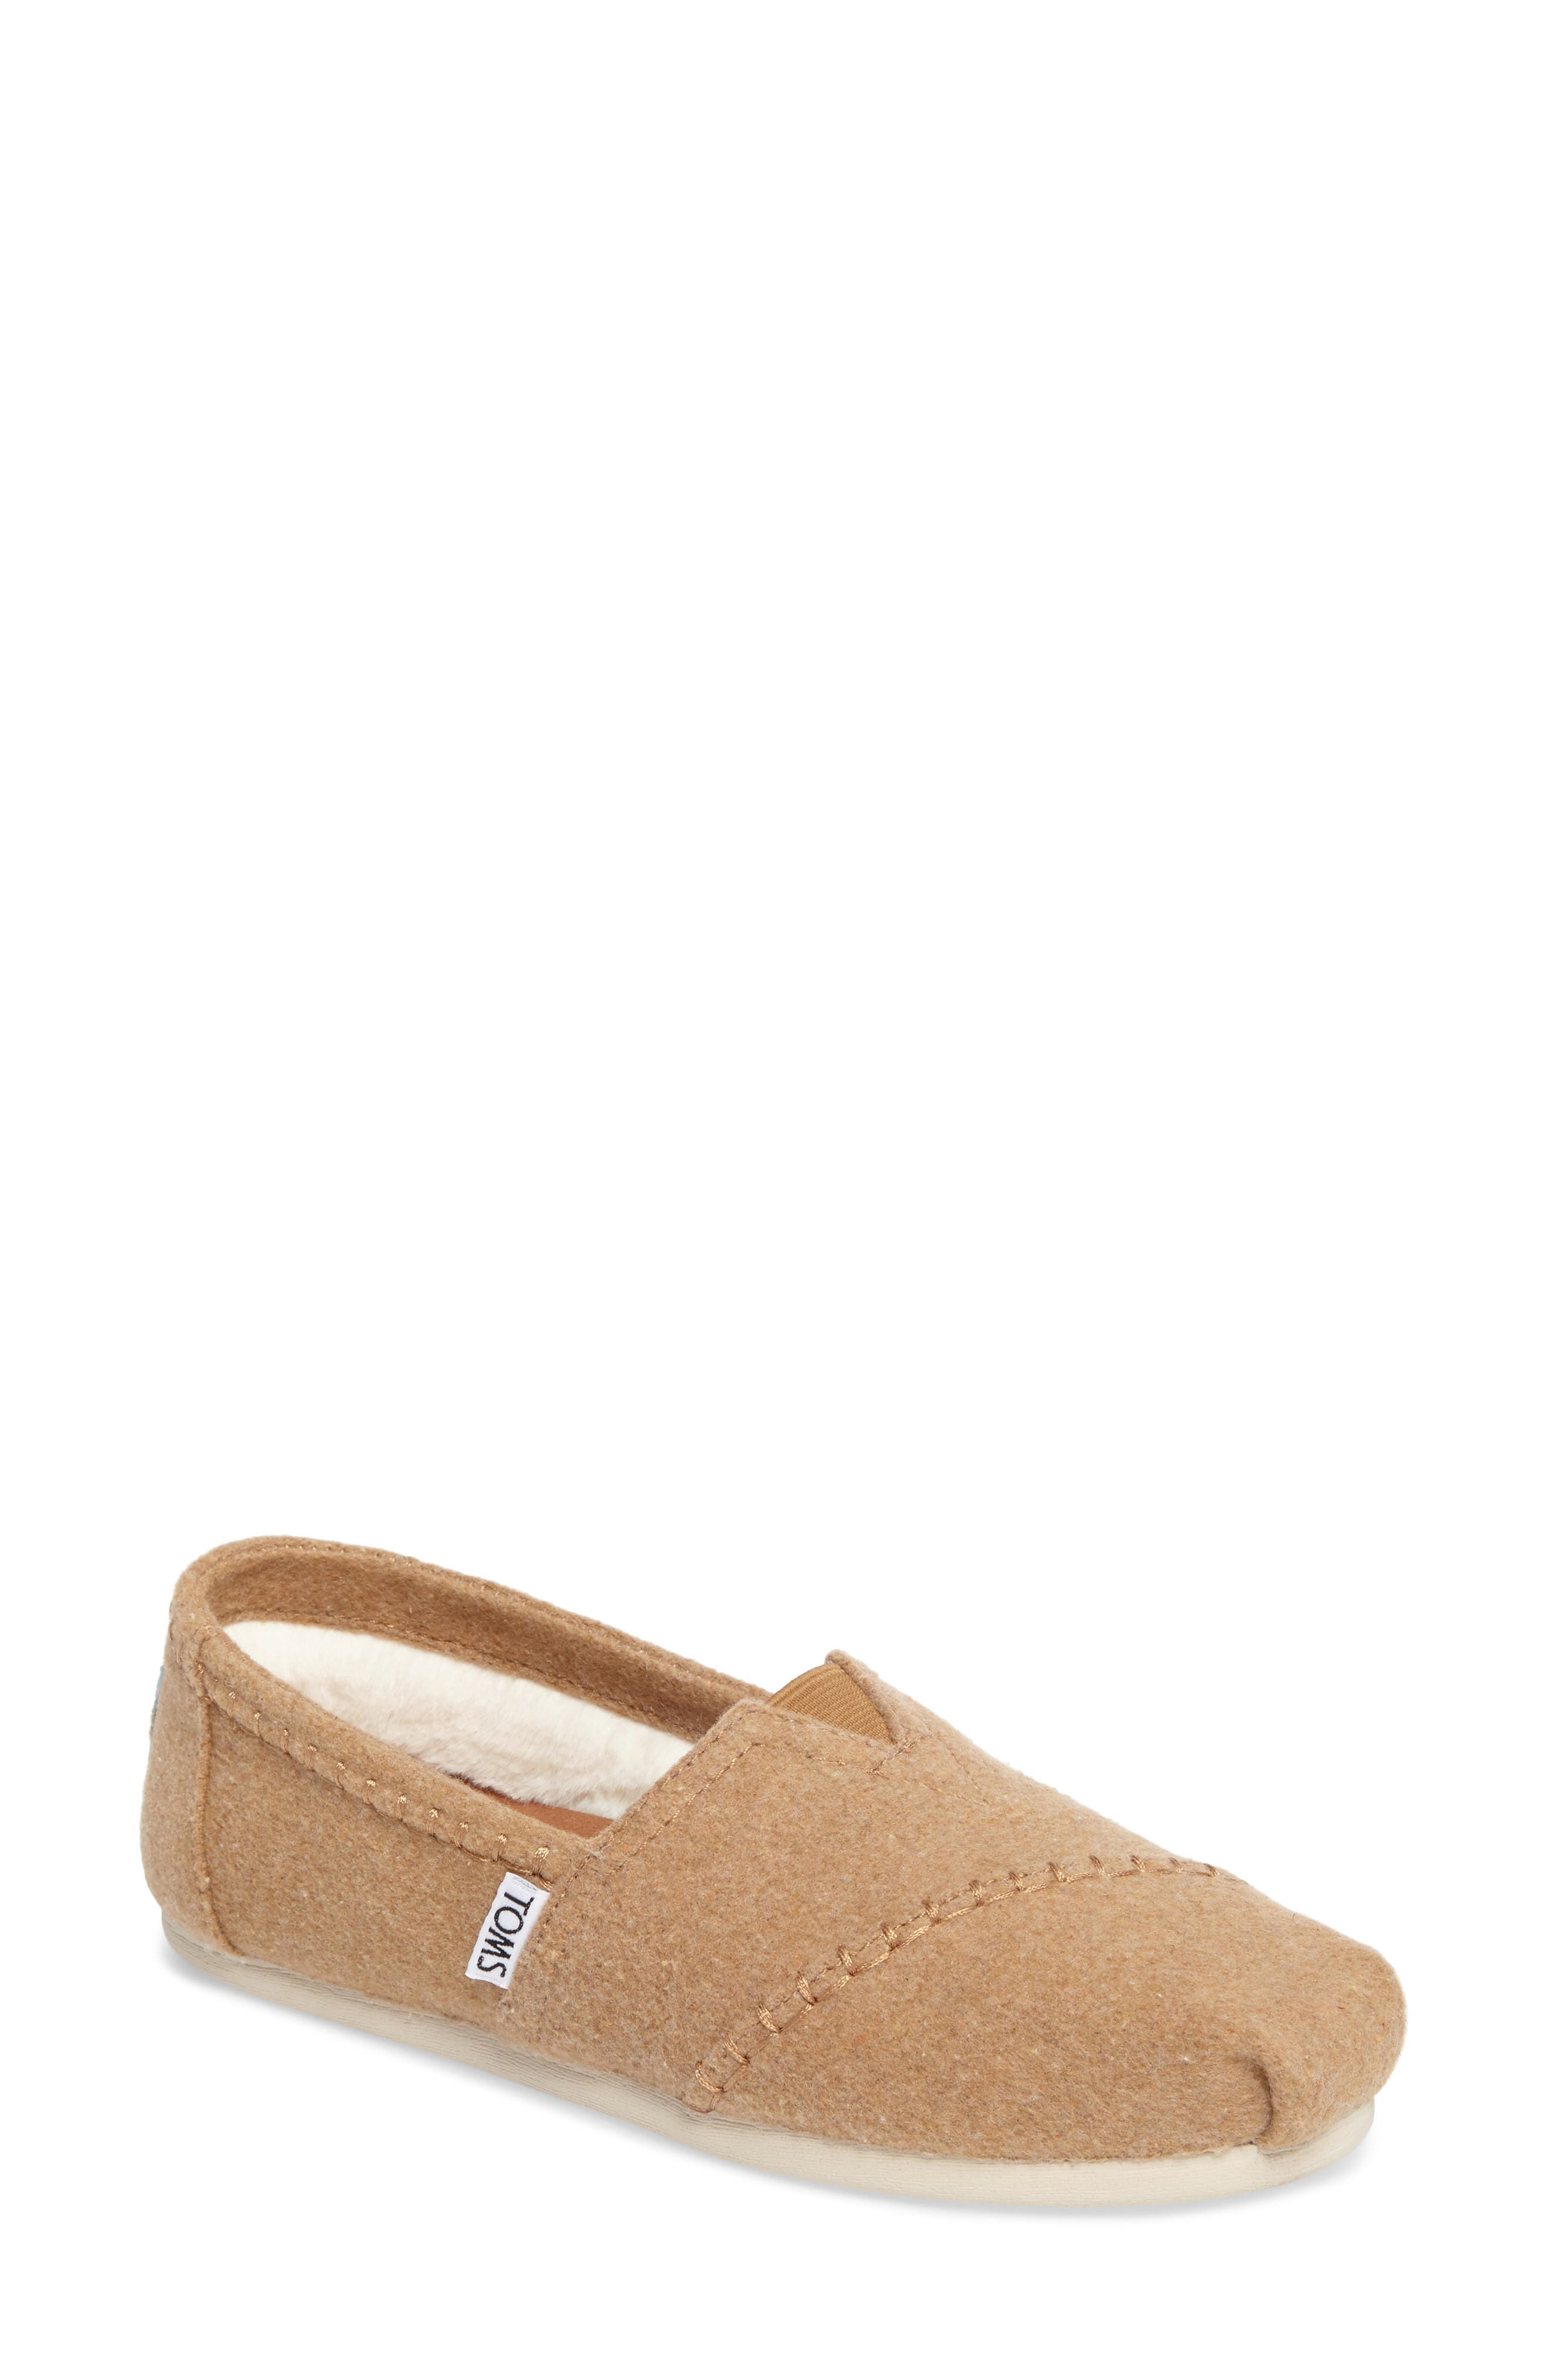 Women'S Classic Embroidered Reindeer Jersey Flats in Toffee